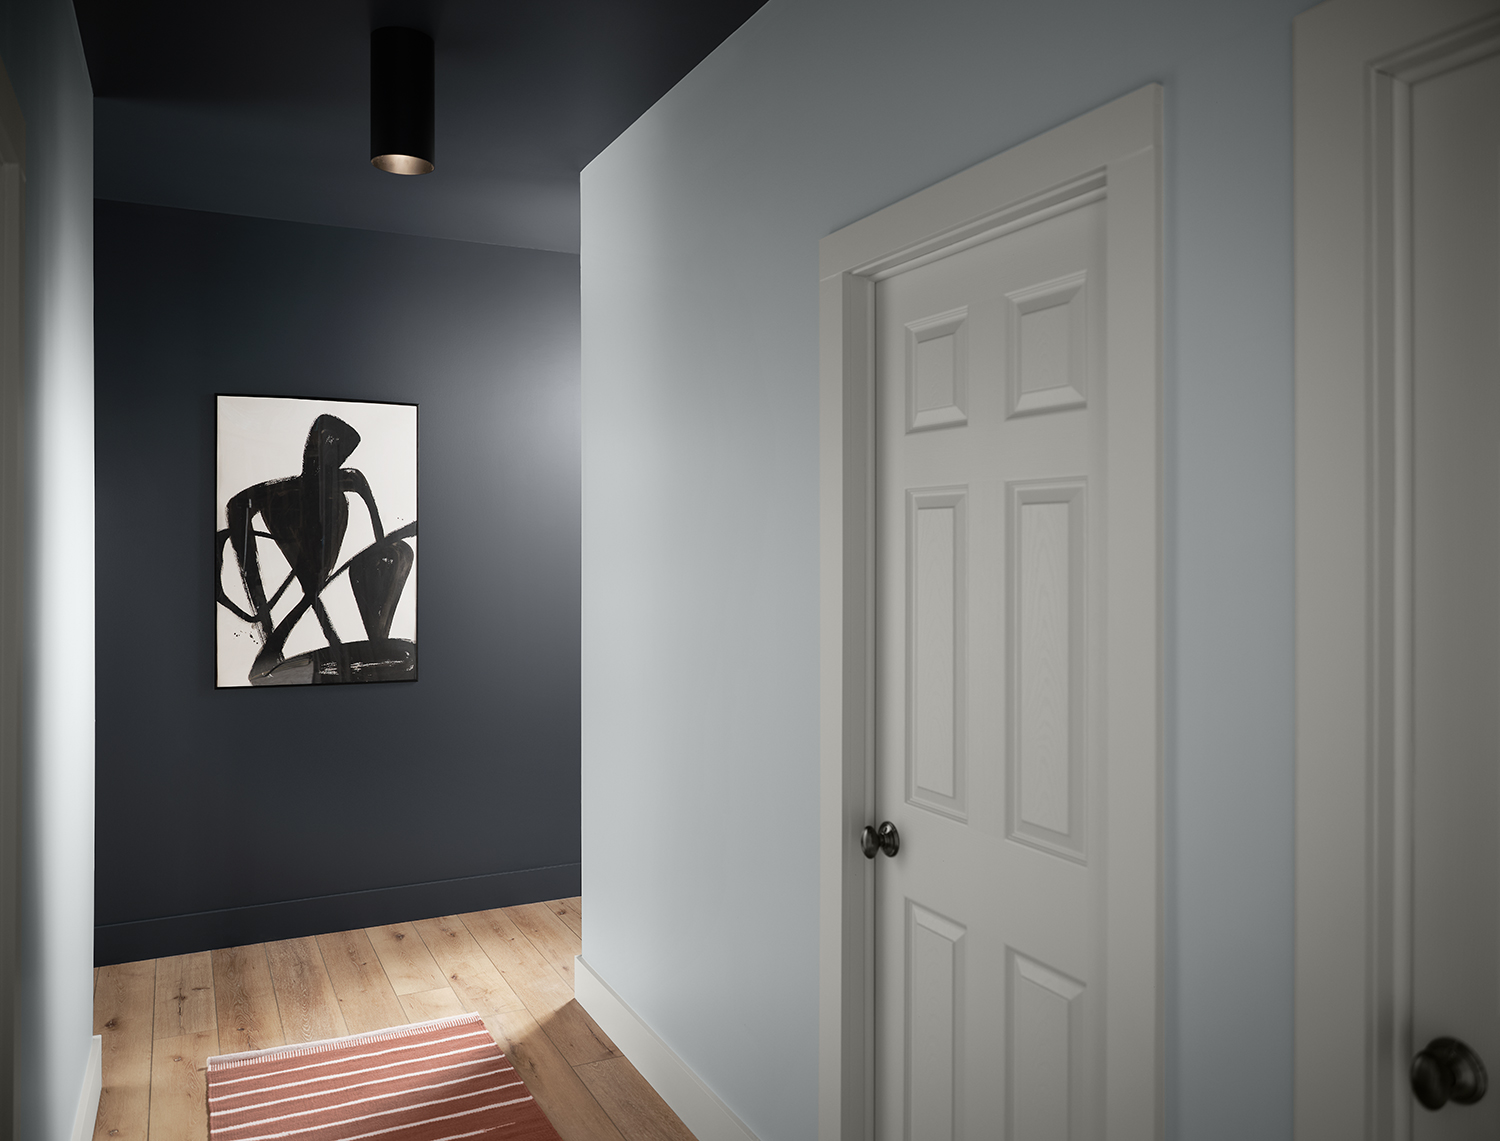 Angled corner view of hallway with red rug, back wall painted Cyberspace SW 7076, single piece of black and white art work on back wall